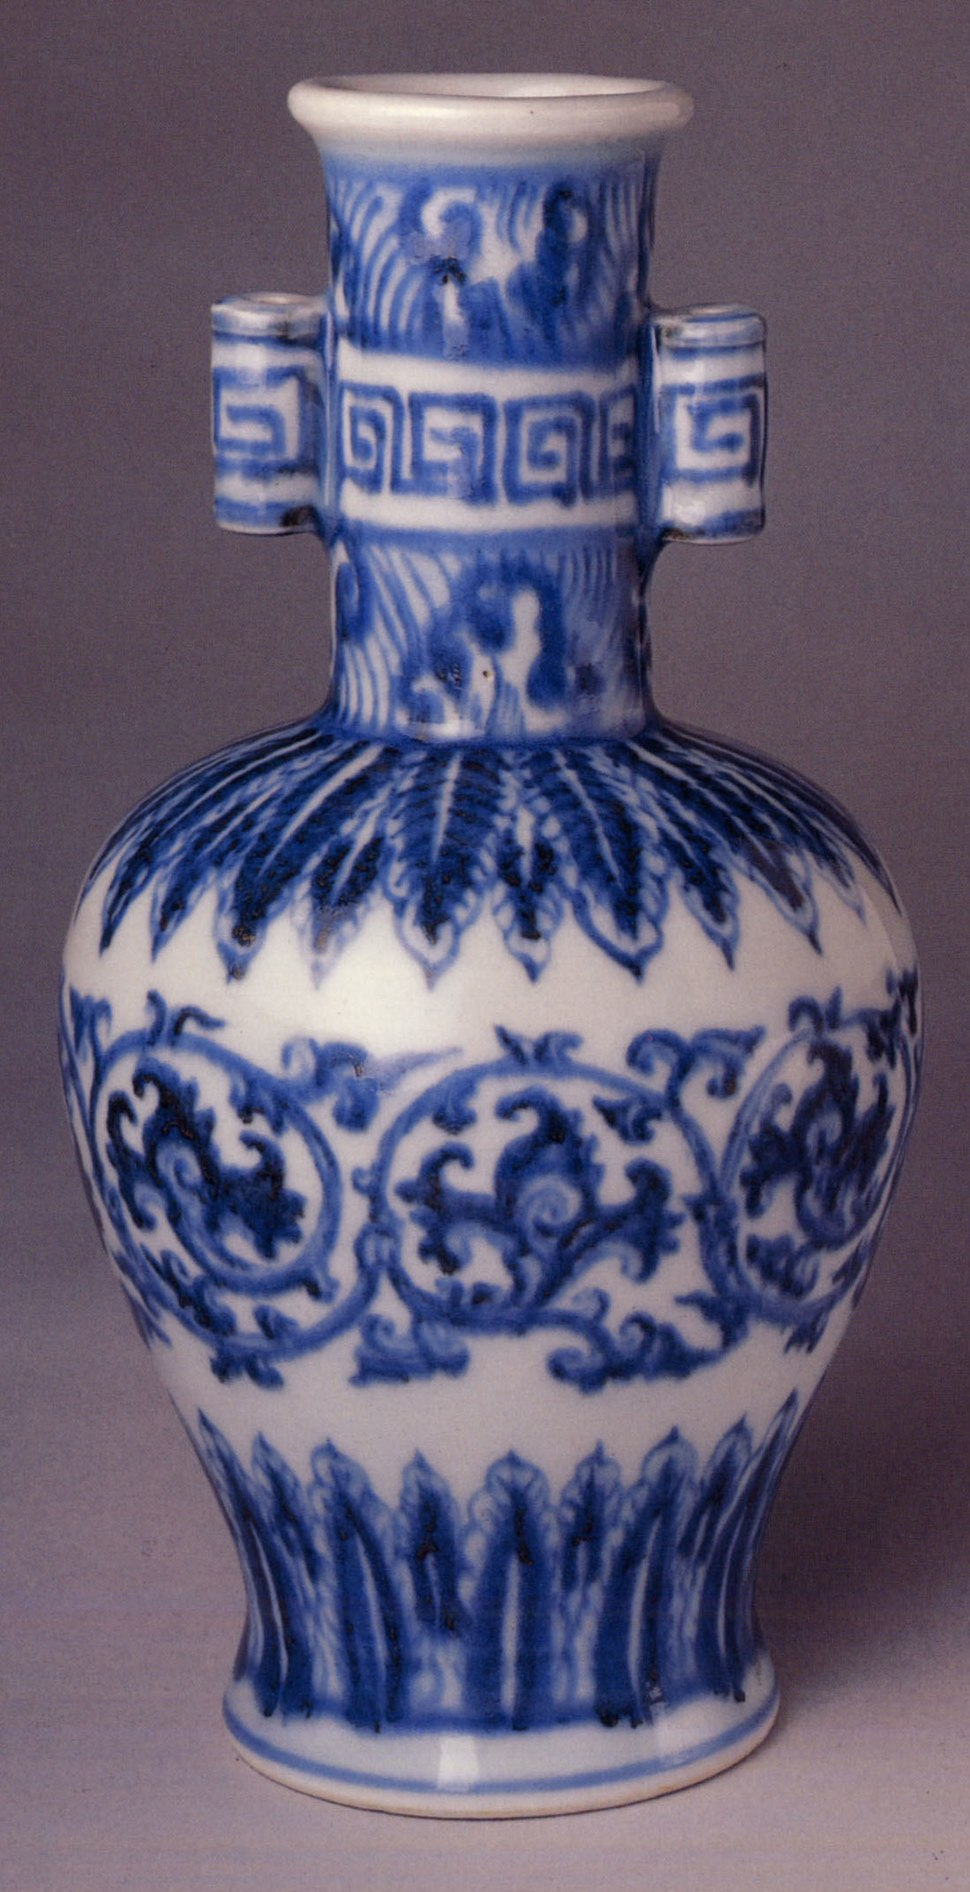 Ming dynasty Xuande mark and period (1426%E2%80%9335) imperial blue and white vase, from The Metropolitan Museum of Art. %E6%98%8E%E5%AE%A3%E5%BE%B7 %E6%99%AF%E5%BE%B7%E9%8E%AE%E7%AA%AF%E9%9D%92%E8%8A%B1%E8%B2%AB%E8%80%B3%E7%93%B6, %E7%BA%BD%E7%BA%A6%E5%A4%A7%E9%83%BD%E5%8D%9A%E7%89%A9%E9%A6%86